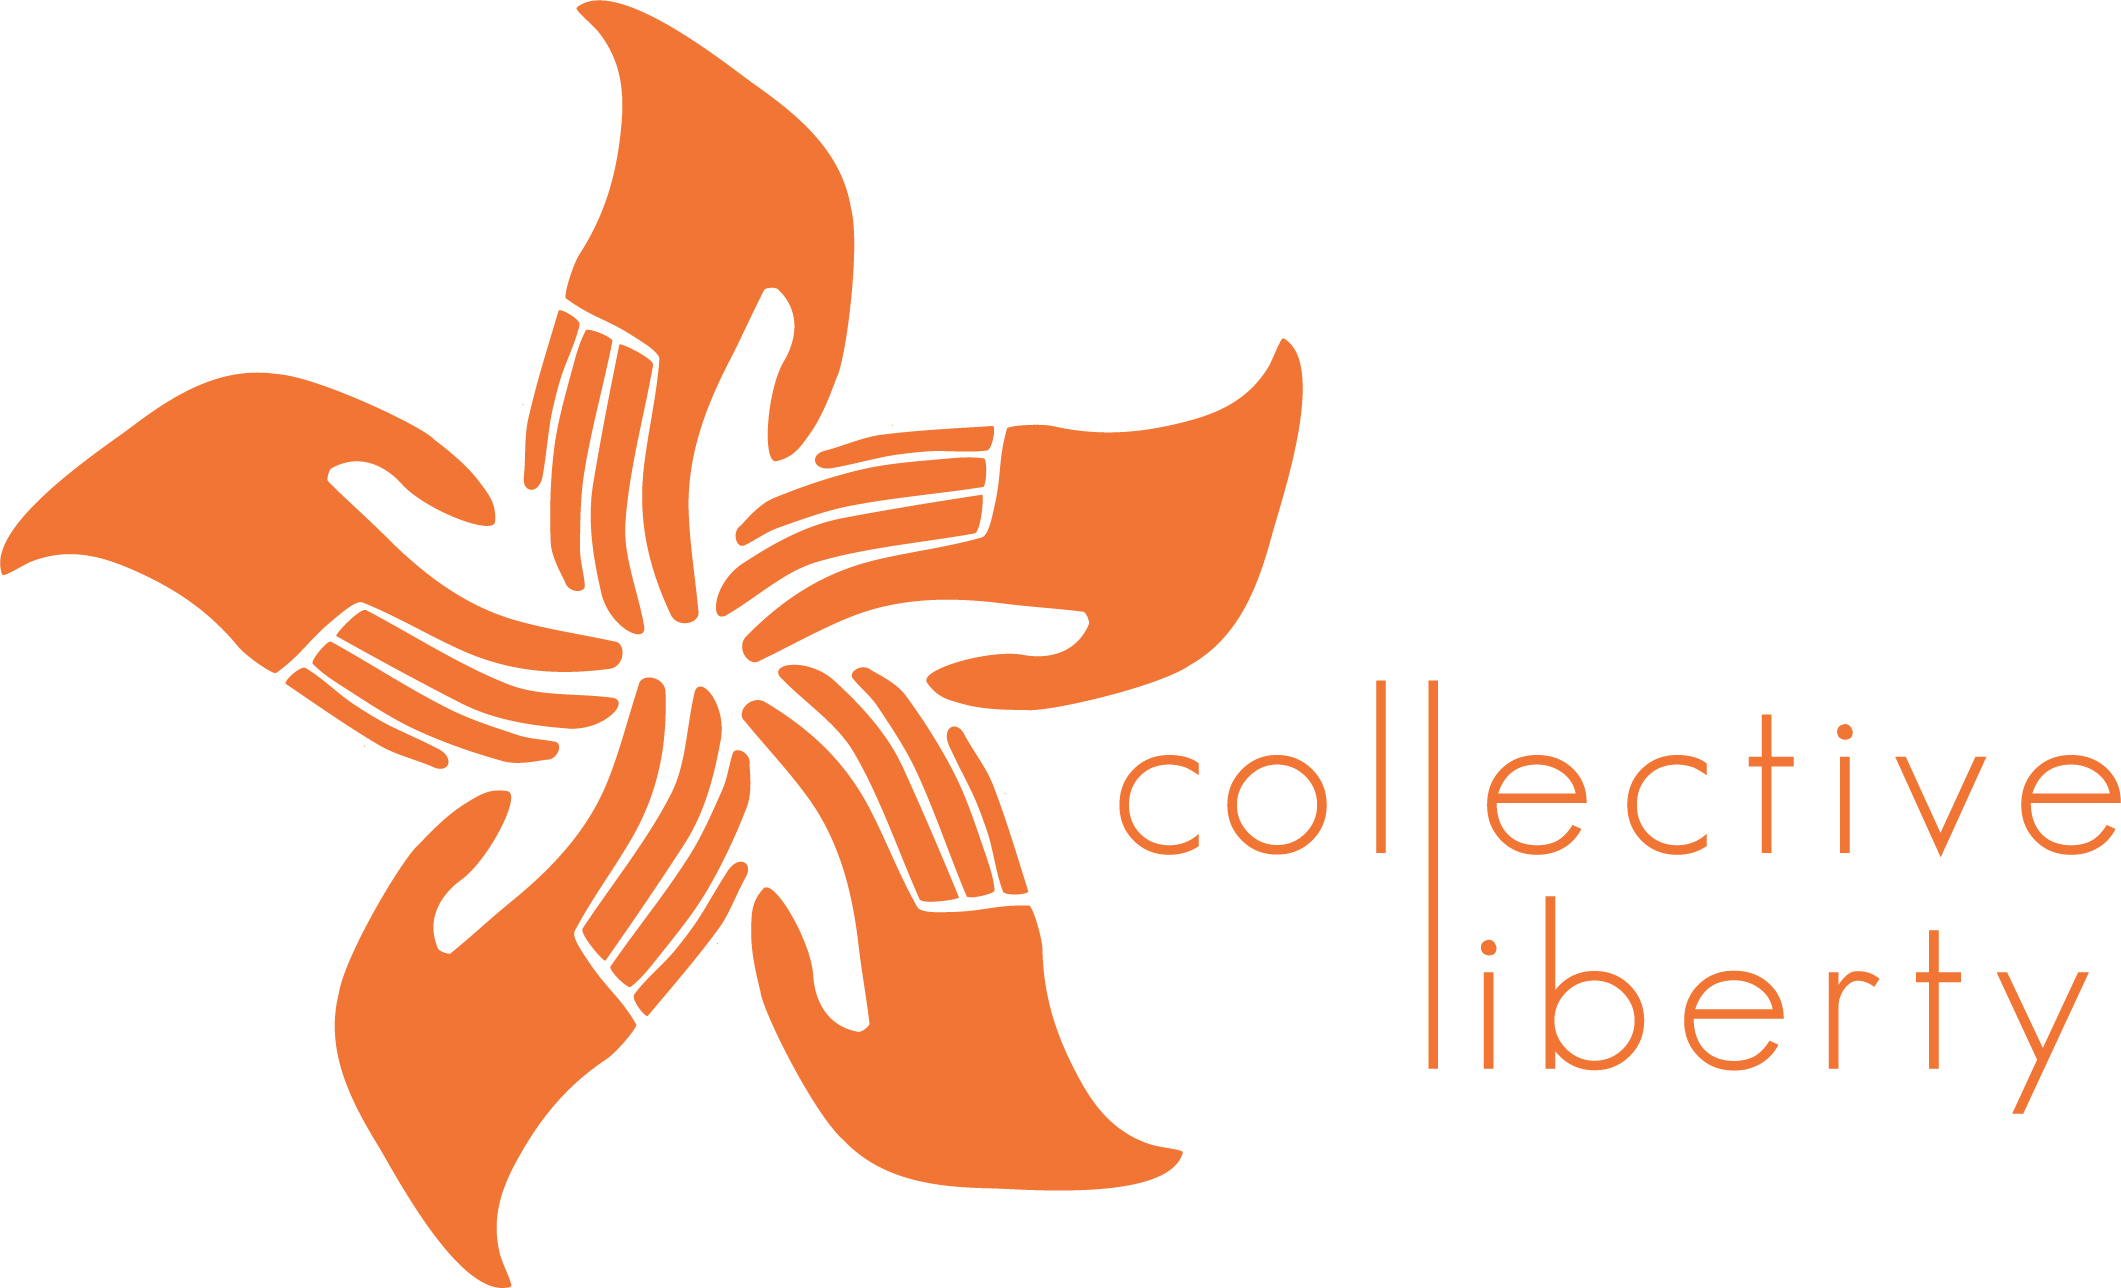 CollectiveLiberty_full_logo_orange.jpg